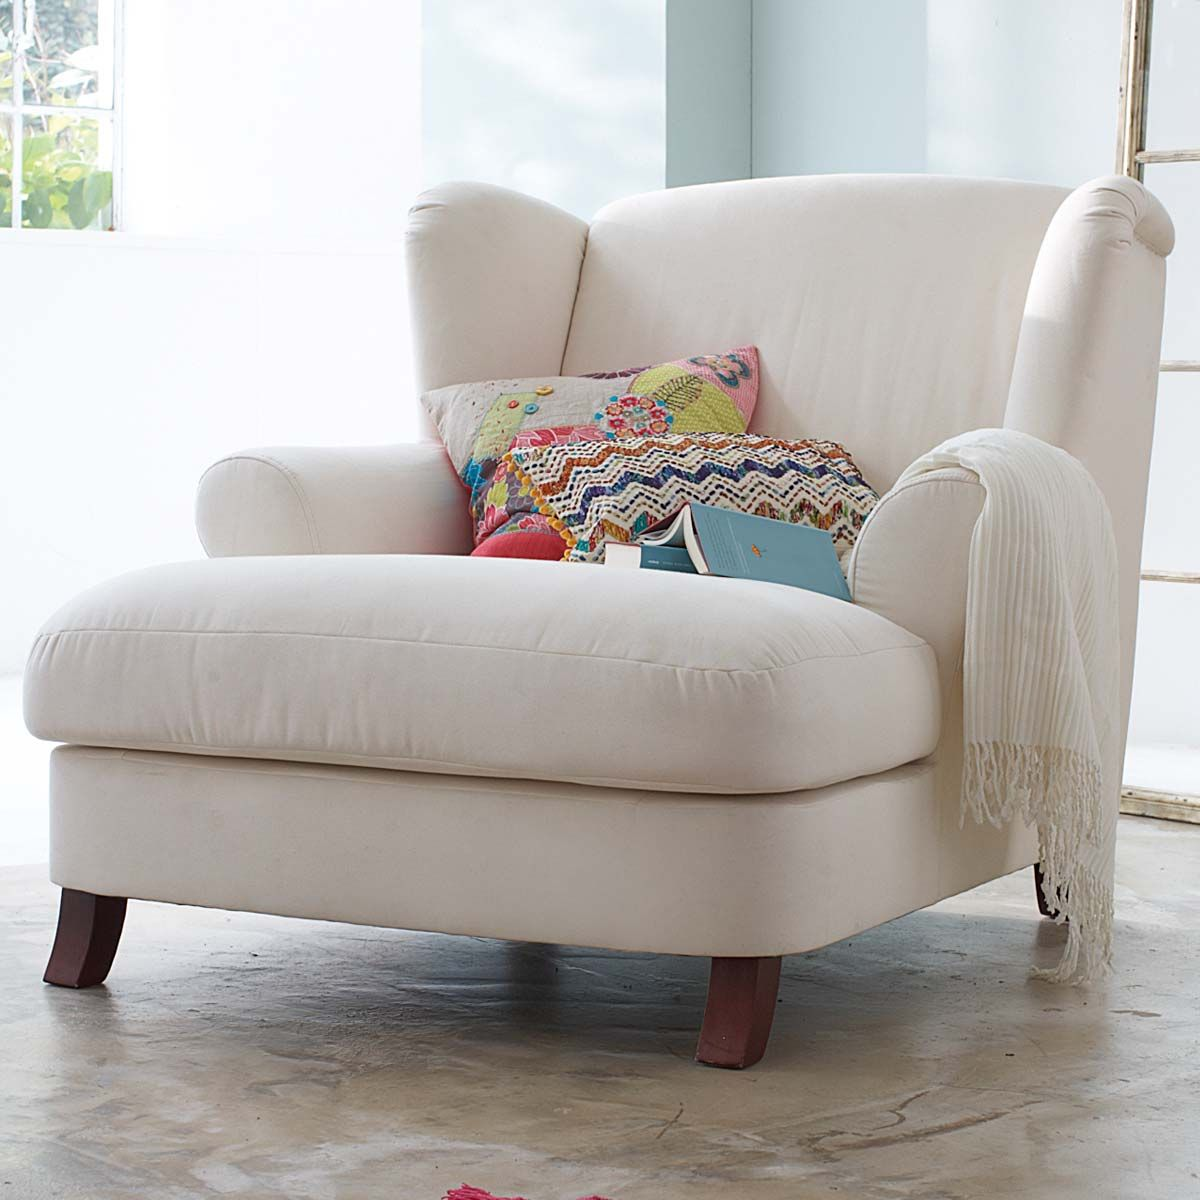 Dream chair via somewhere north to build a home Comfy chairs for bedroom